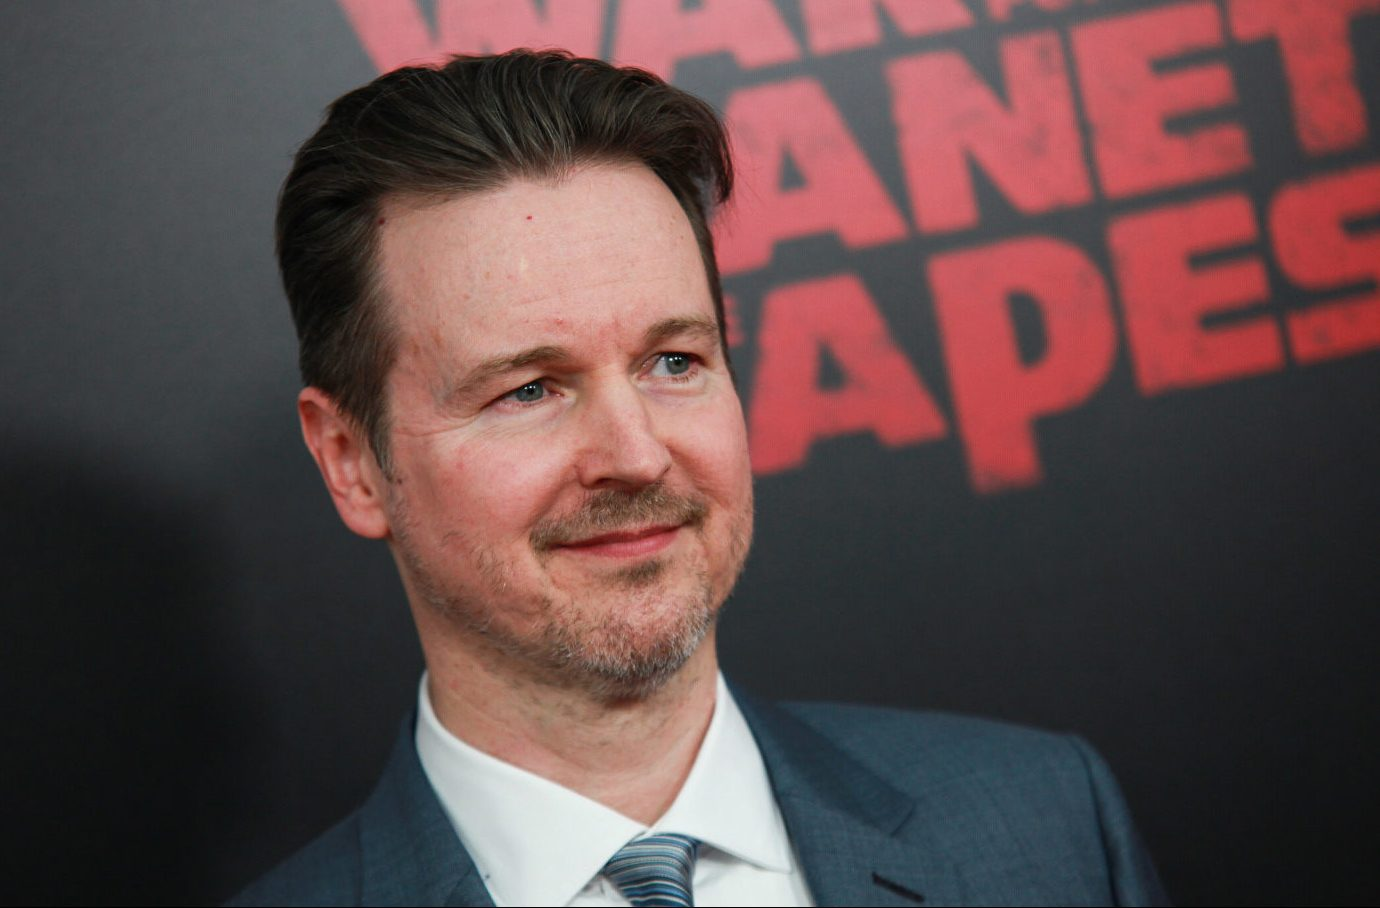 Matt Reeves Signs Overall Deal With Warner Bros. - Movie News Net